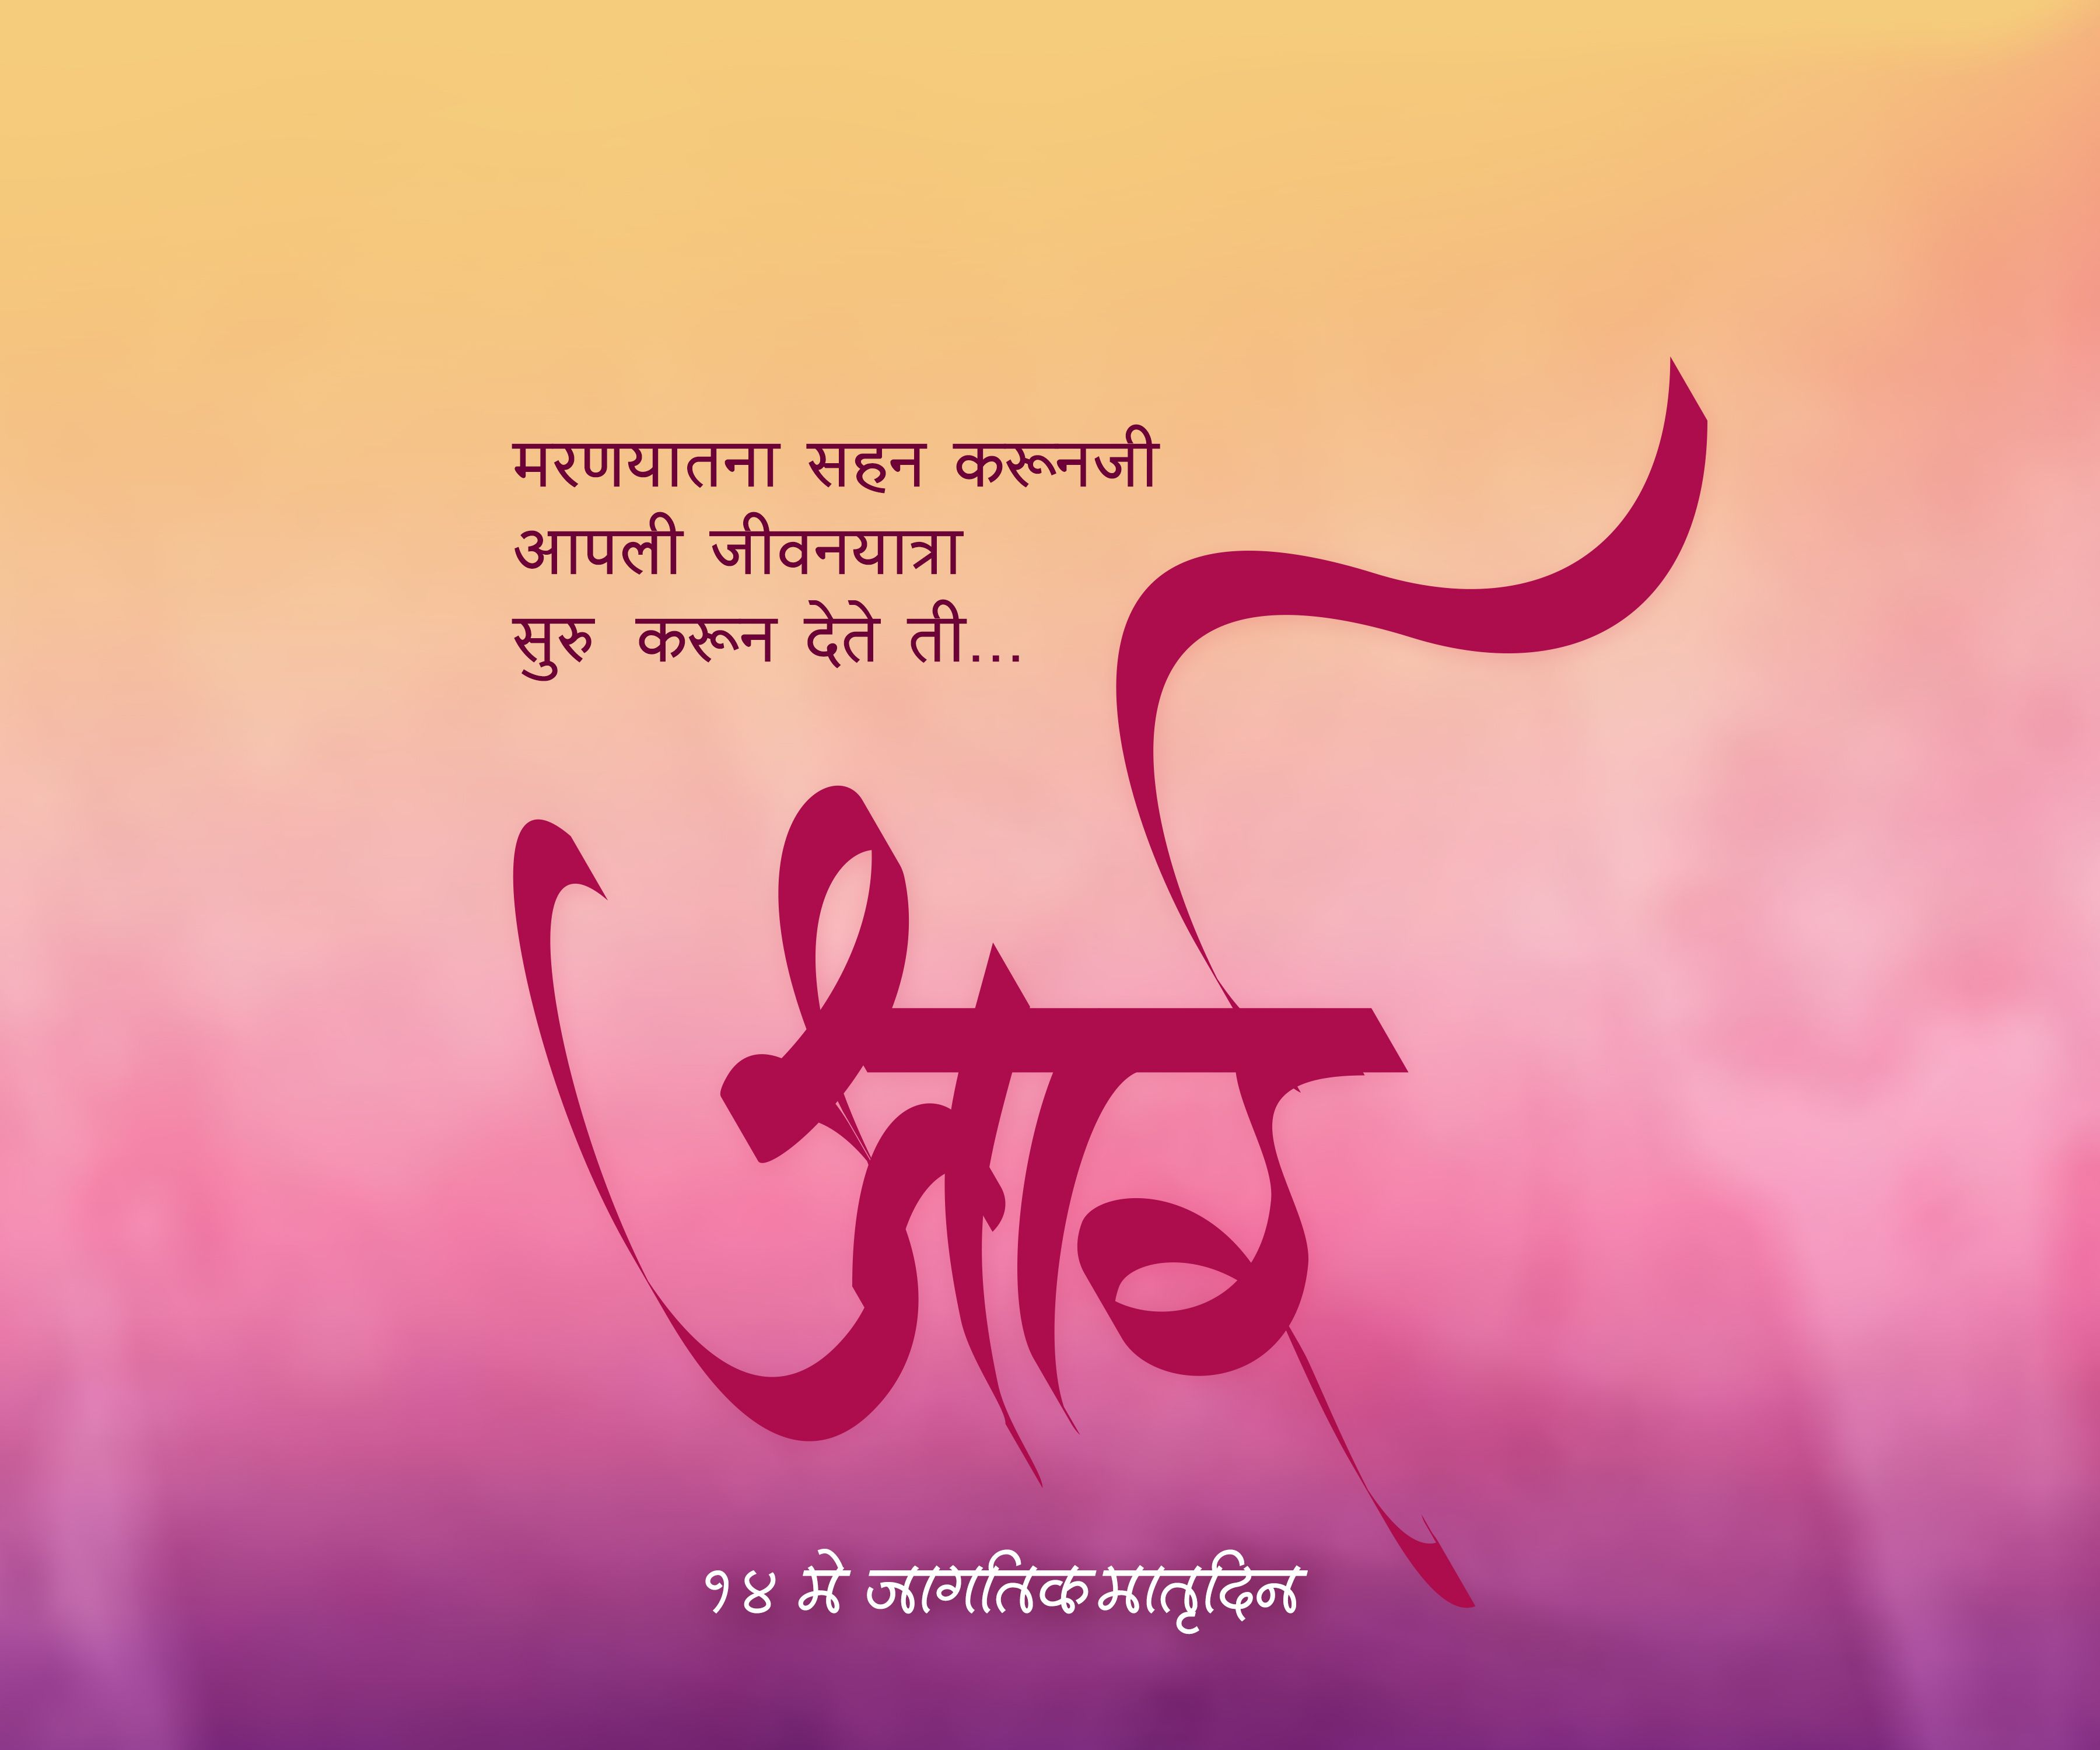 aai calligraphy by vijay deshmukh Feelings words, Mother